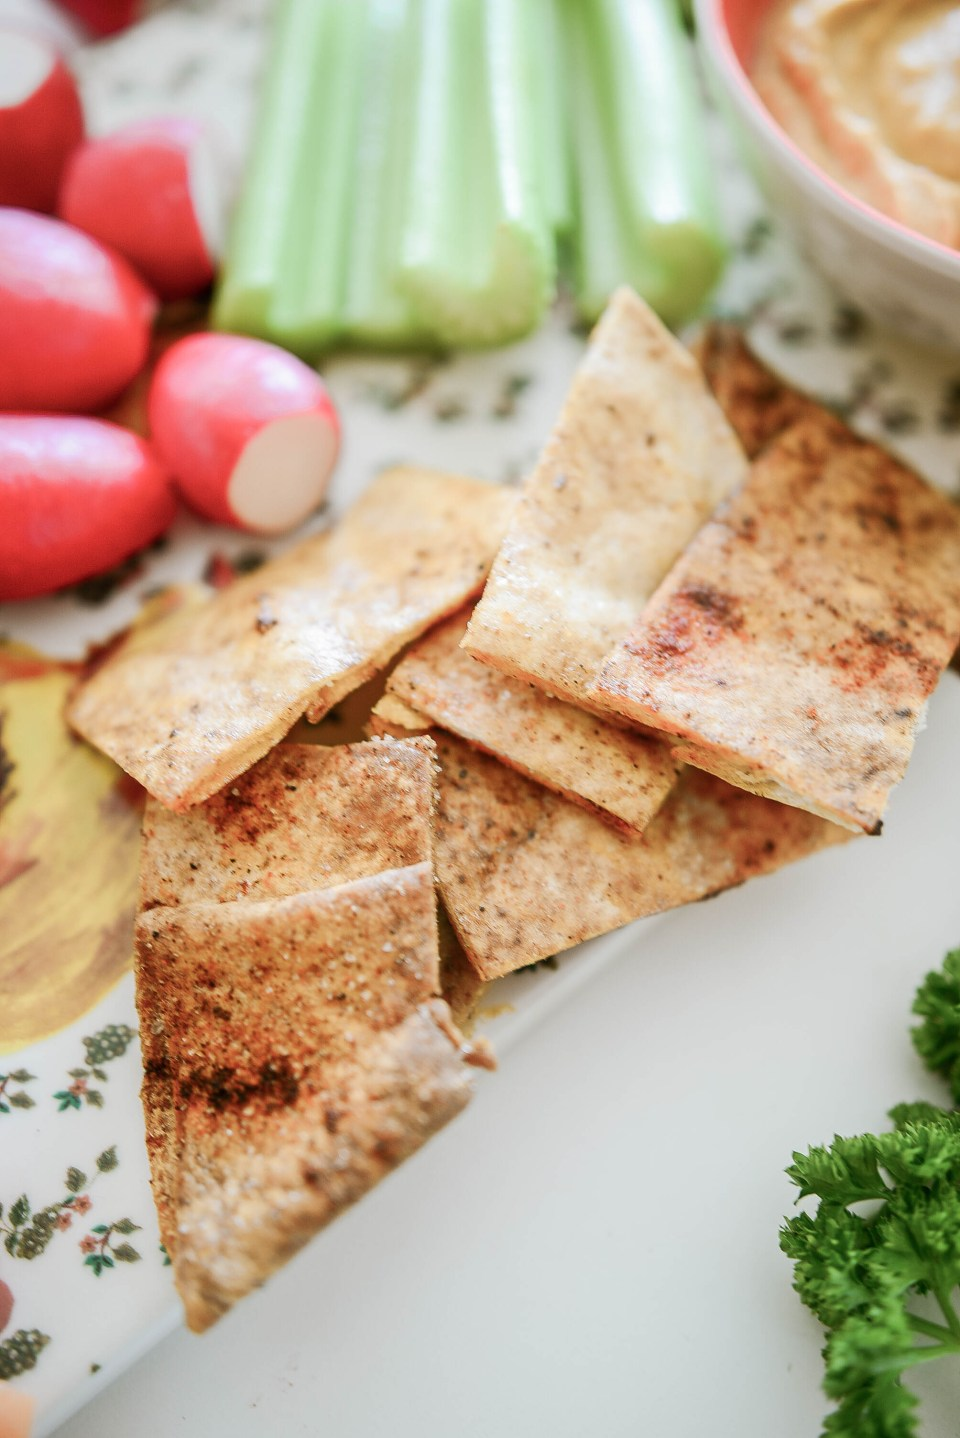 How to Make Hummus and homemade pita chips - Easy Hummus Recipe to Follow